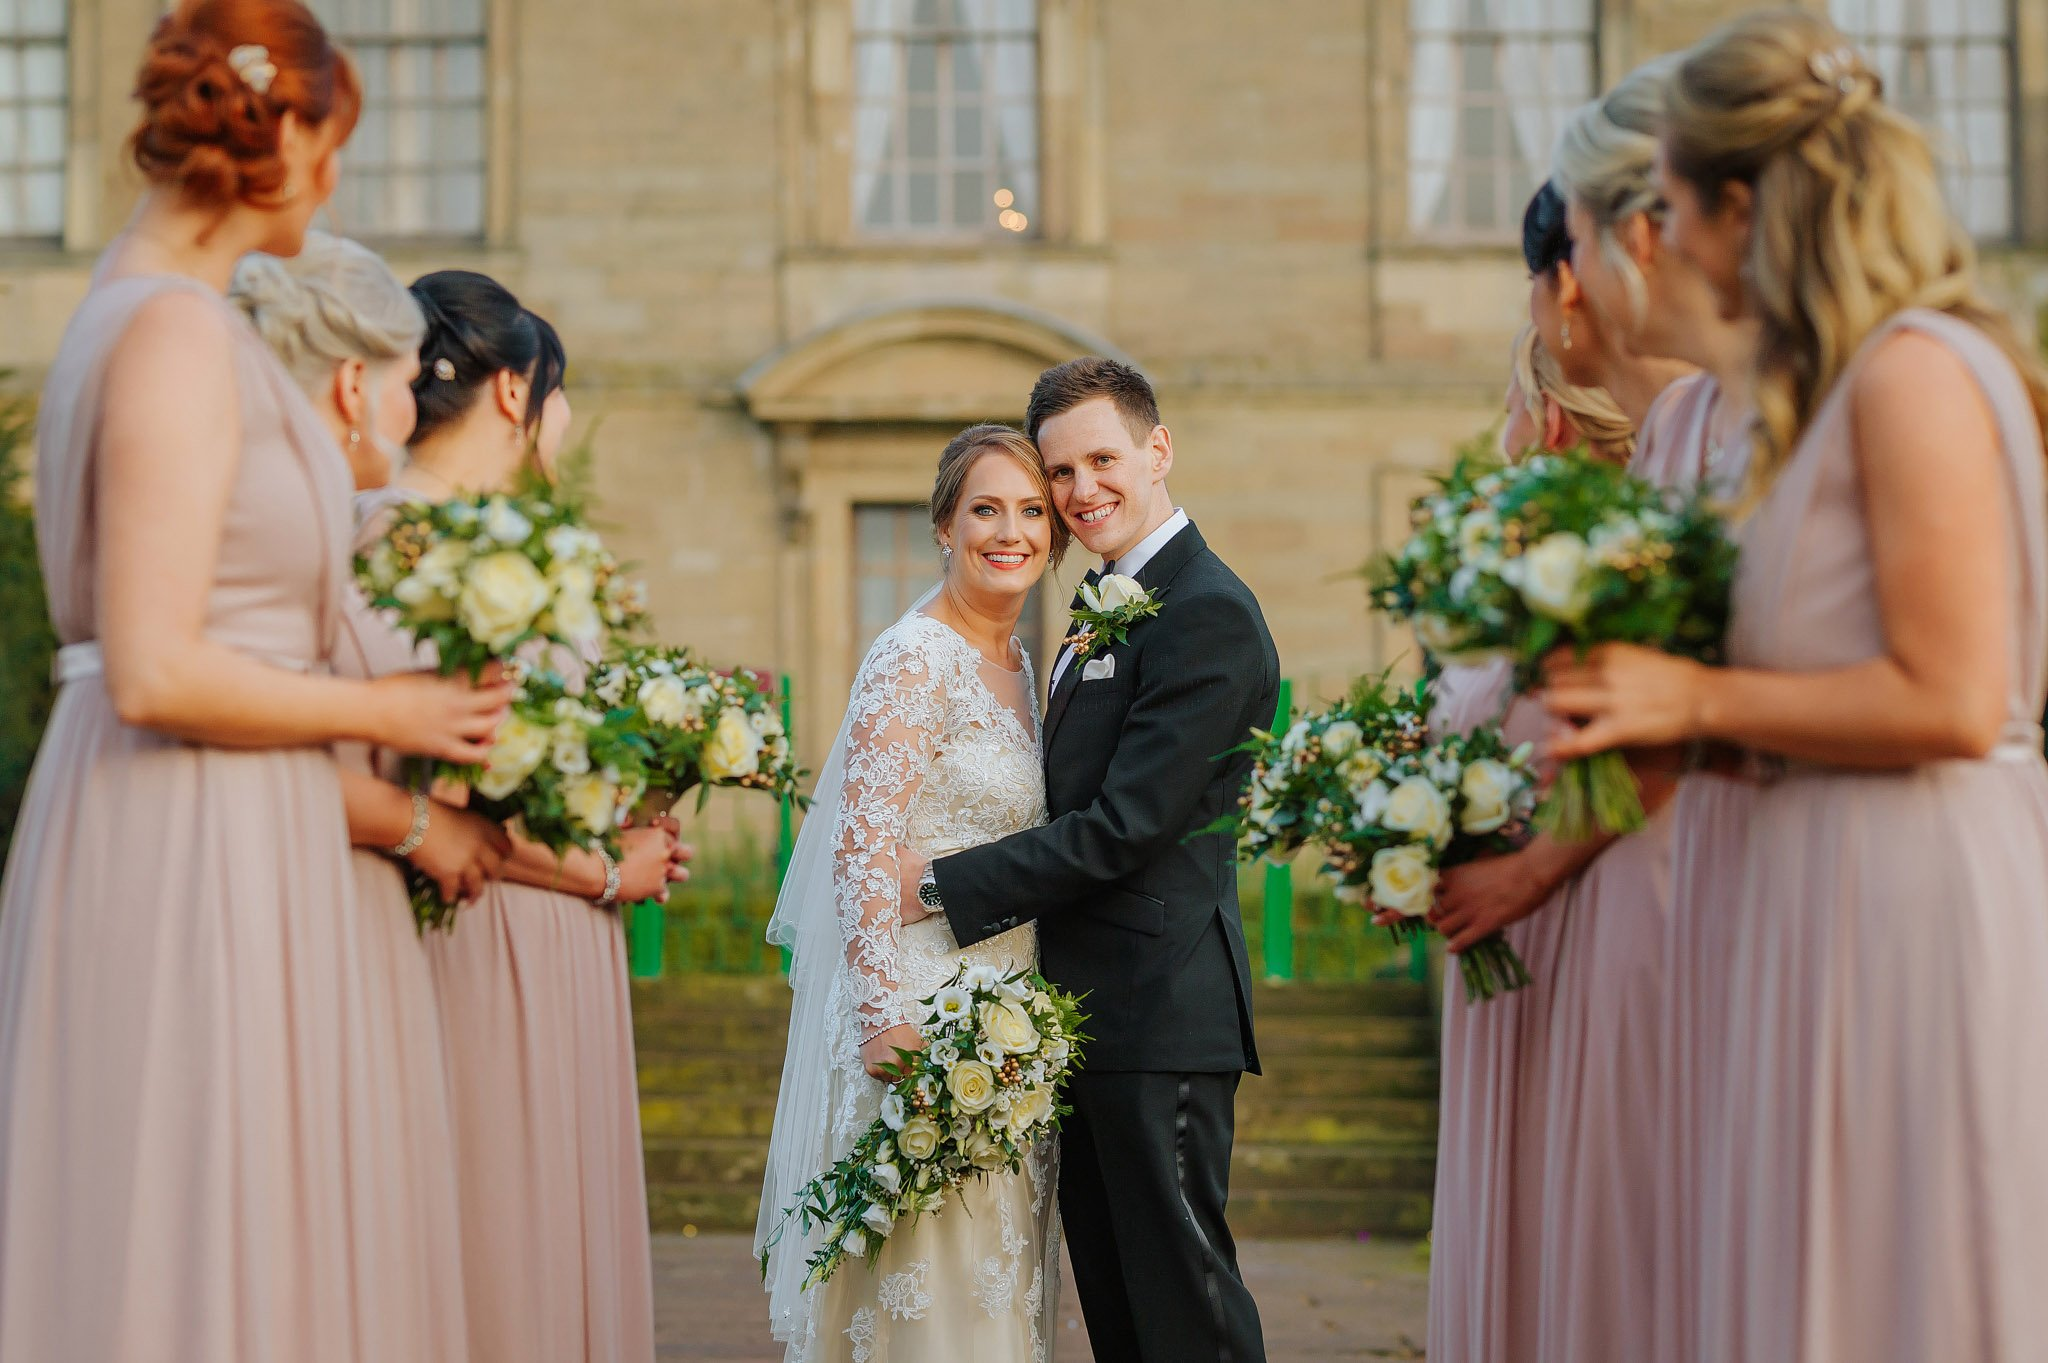 Coombe Abbey wedding in Coventry, Warwickshire - Sam + Matt 41